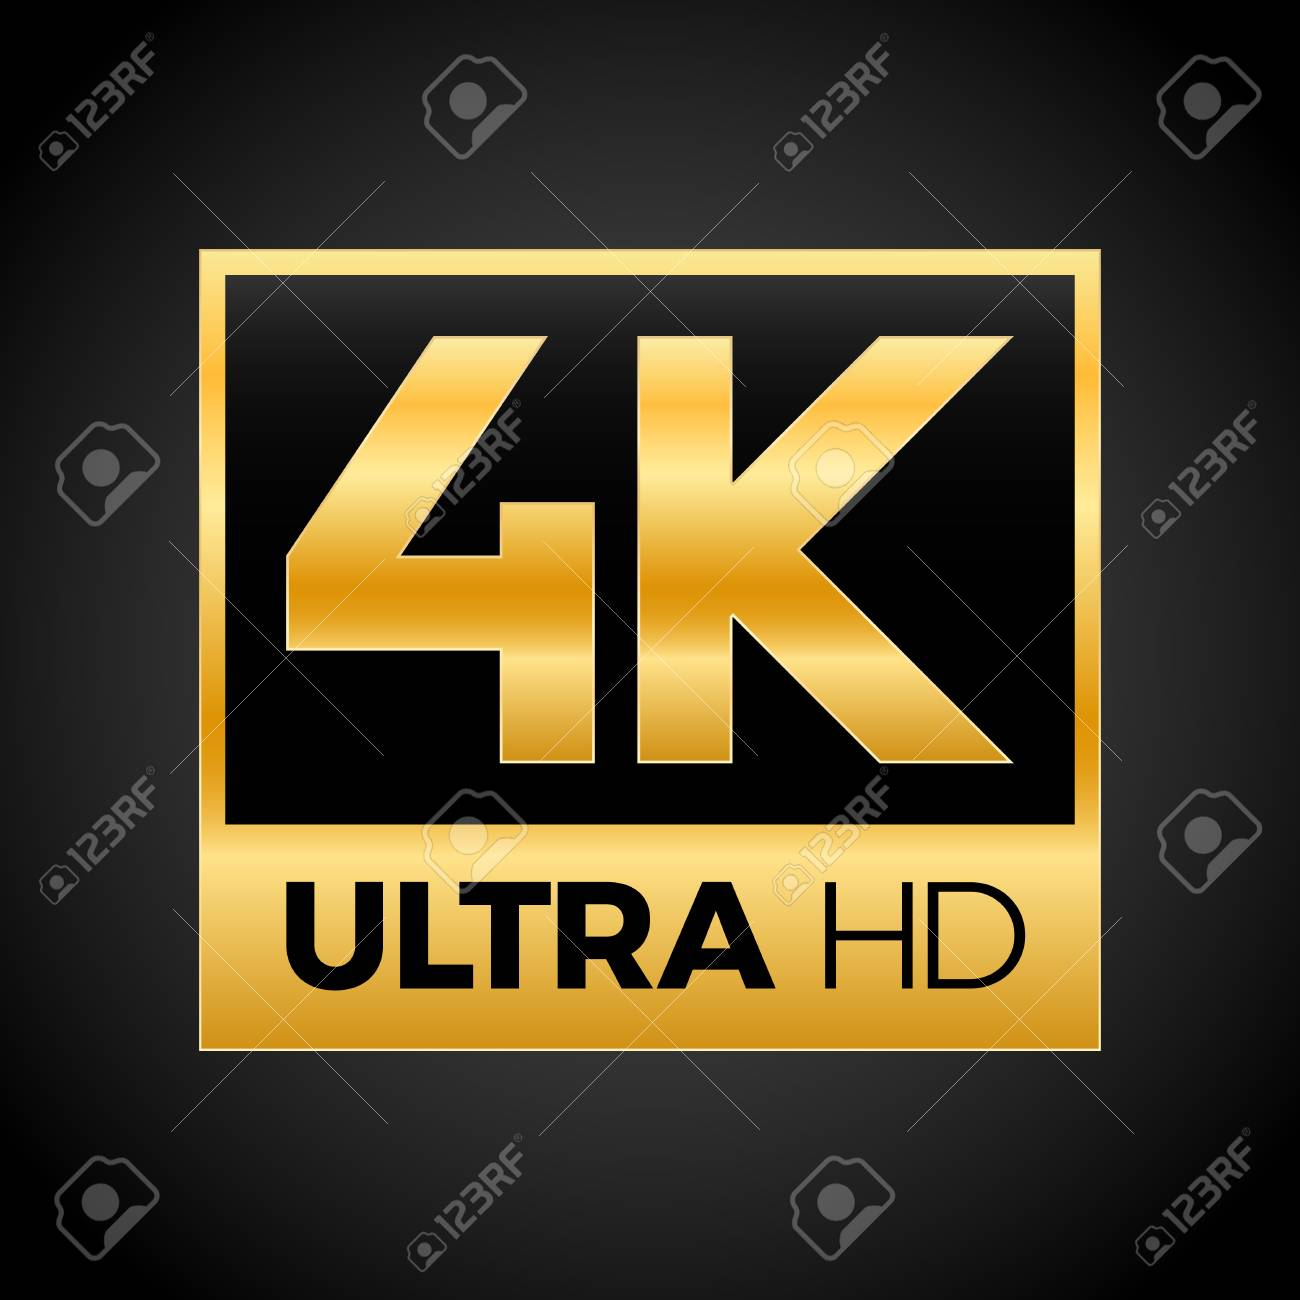 4k ultra hd symbol, high definition 4k resolution mark, uhd